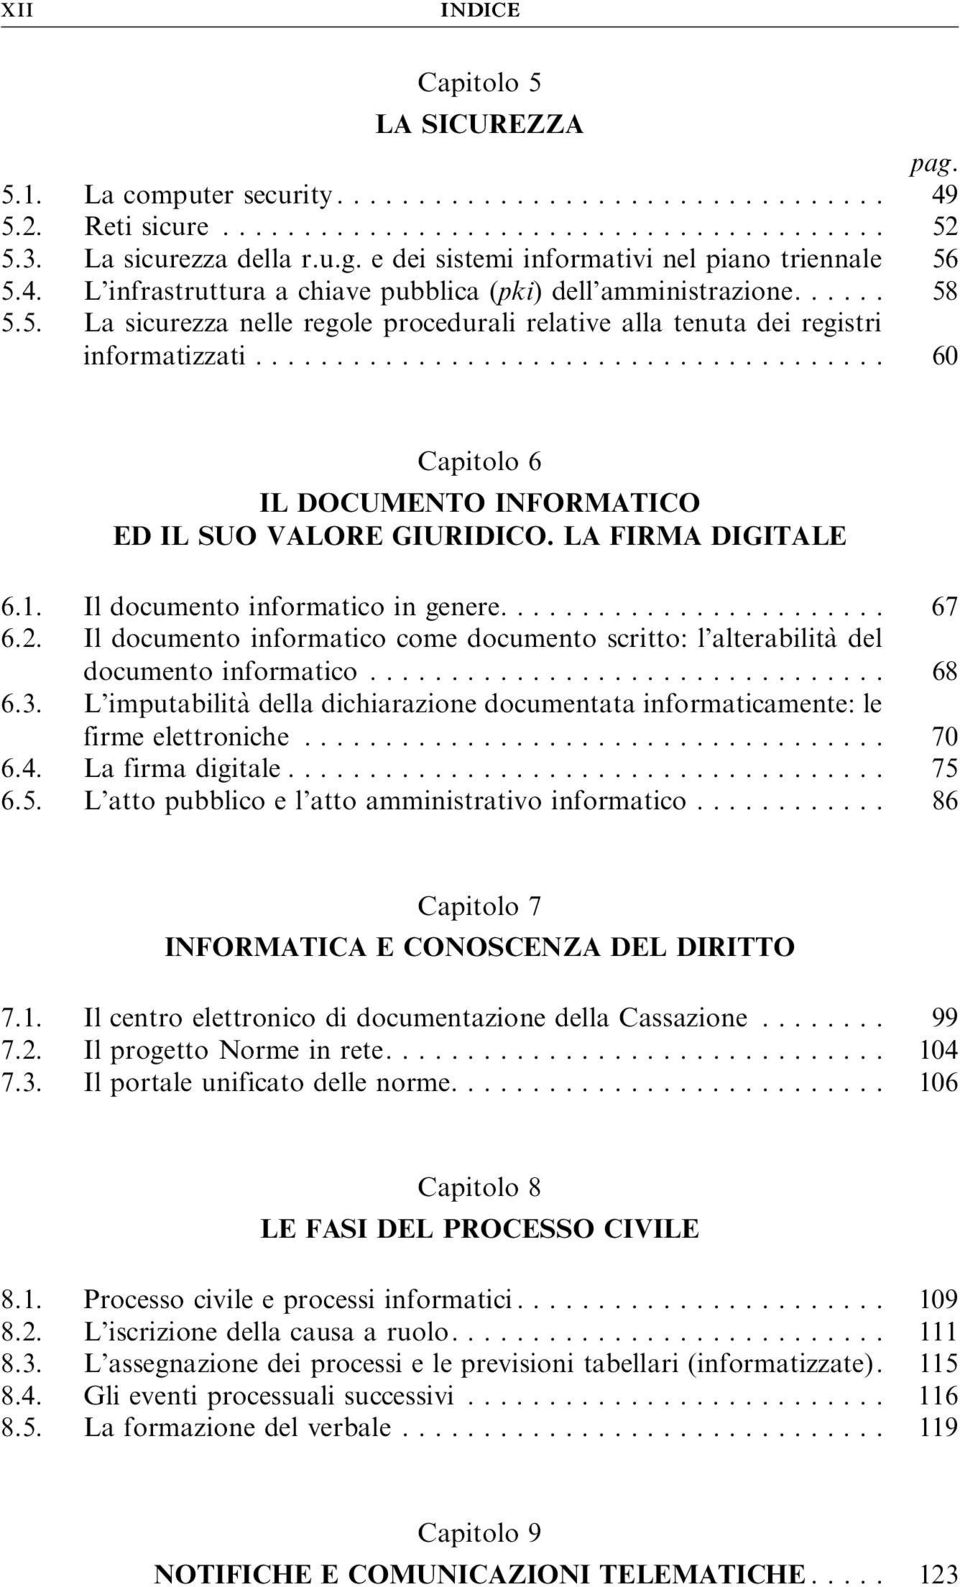 Ildocumentoinformaticoingenere... 67 6.2. Il documento informatico come documento scritto: l alterabilità del documentoinformatico... 68 6.3.